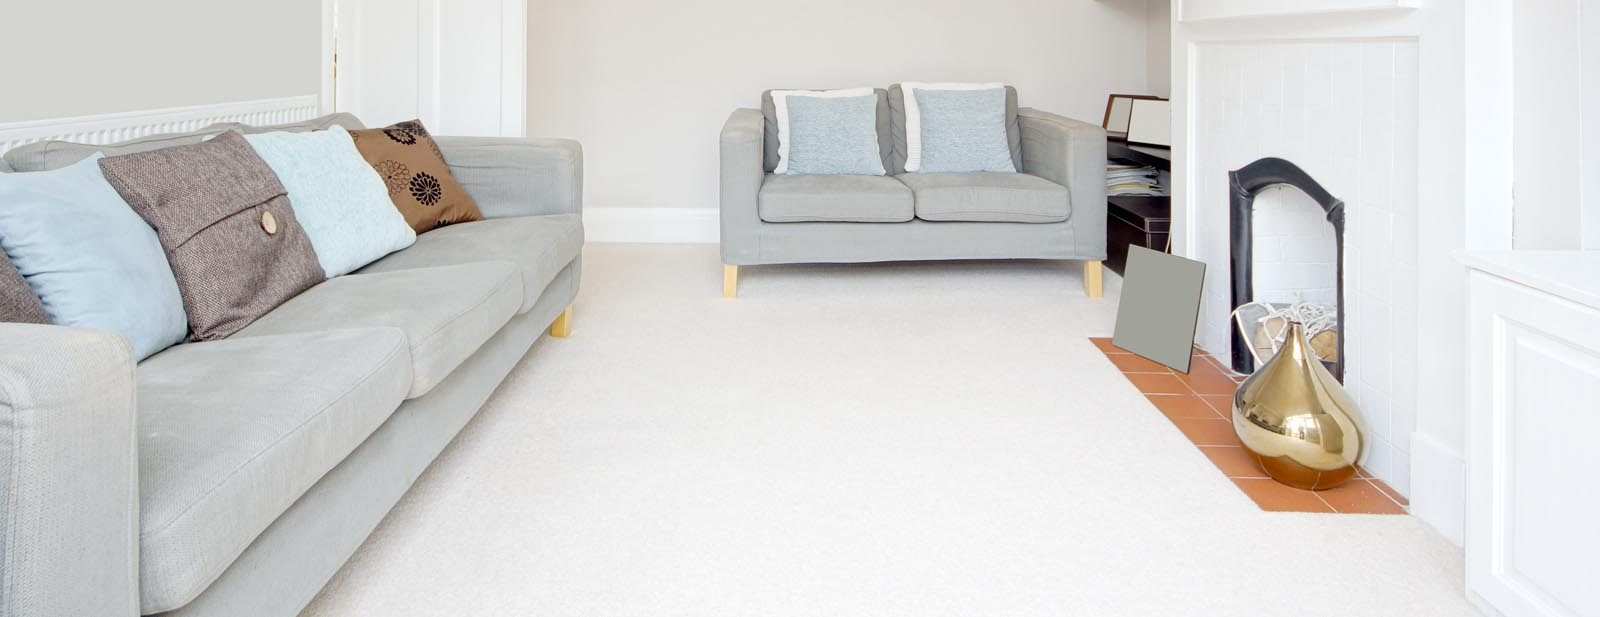 Fresh upholstery and carpets by ServiceMaster Clean Devon